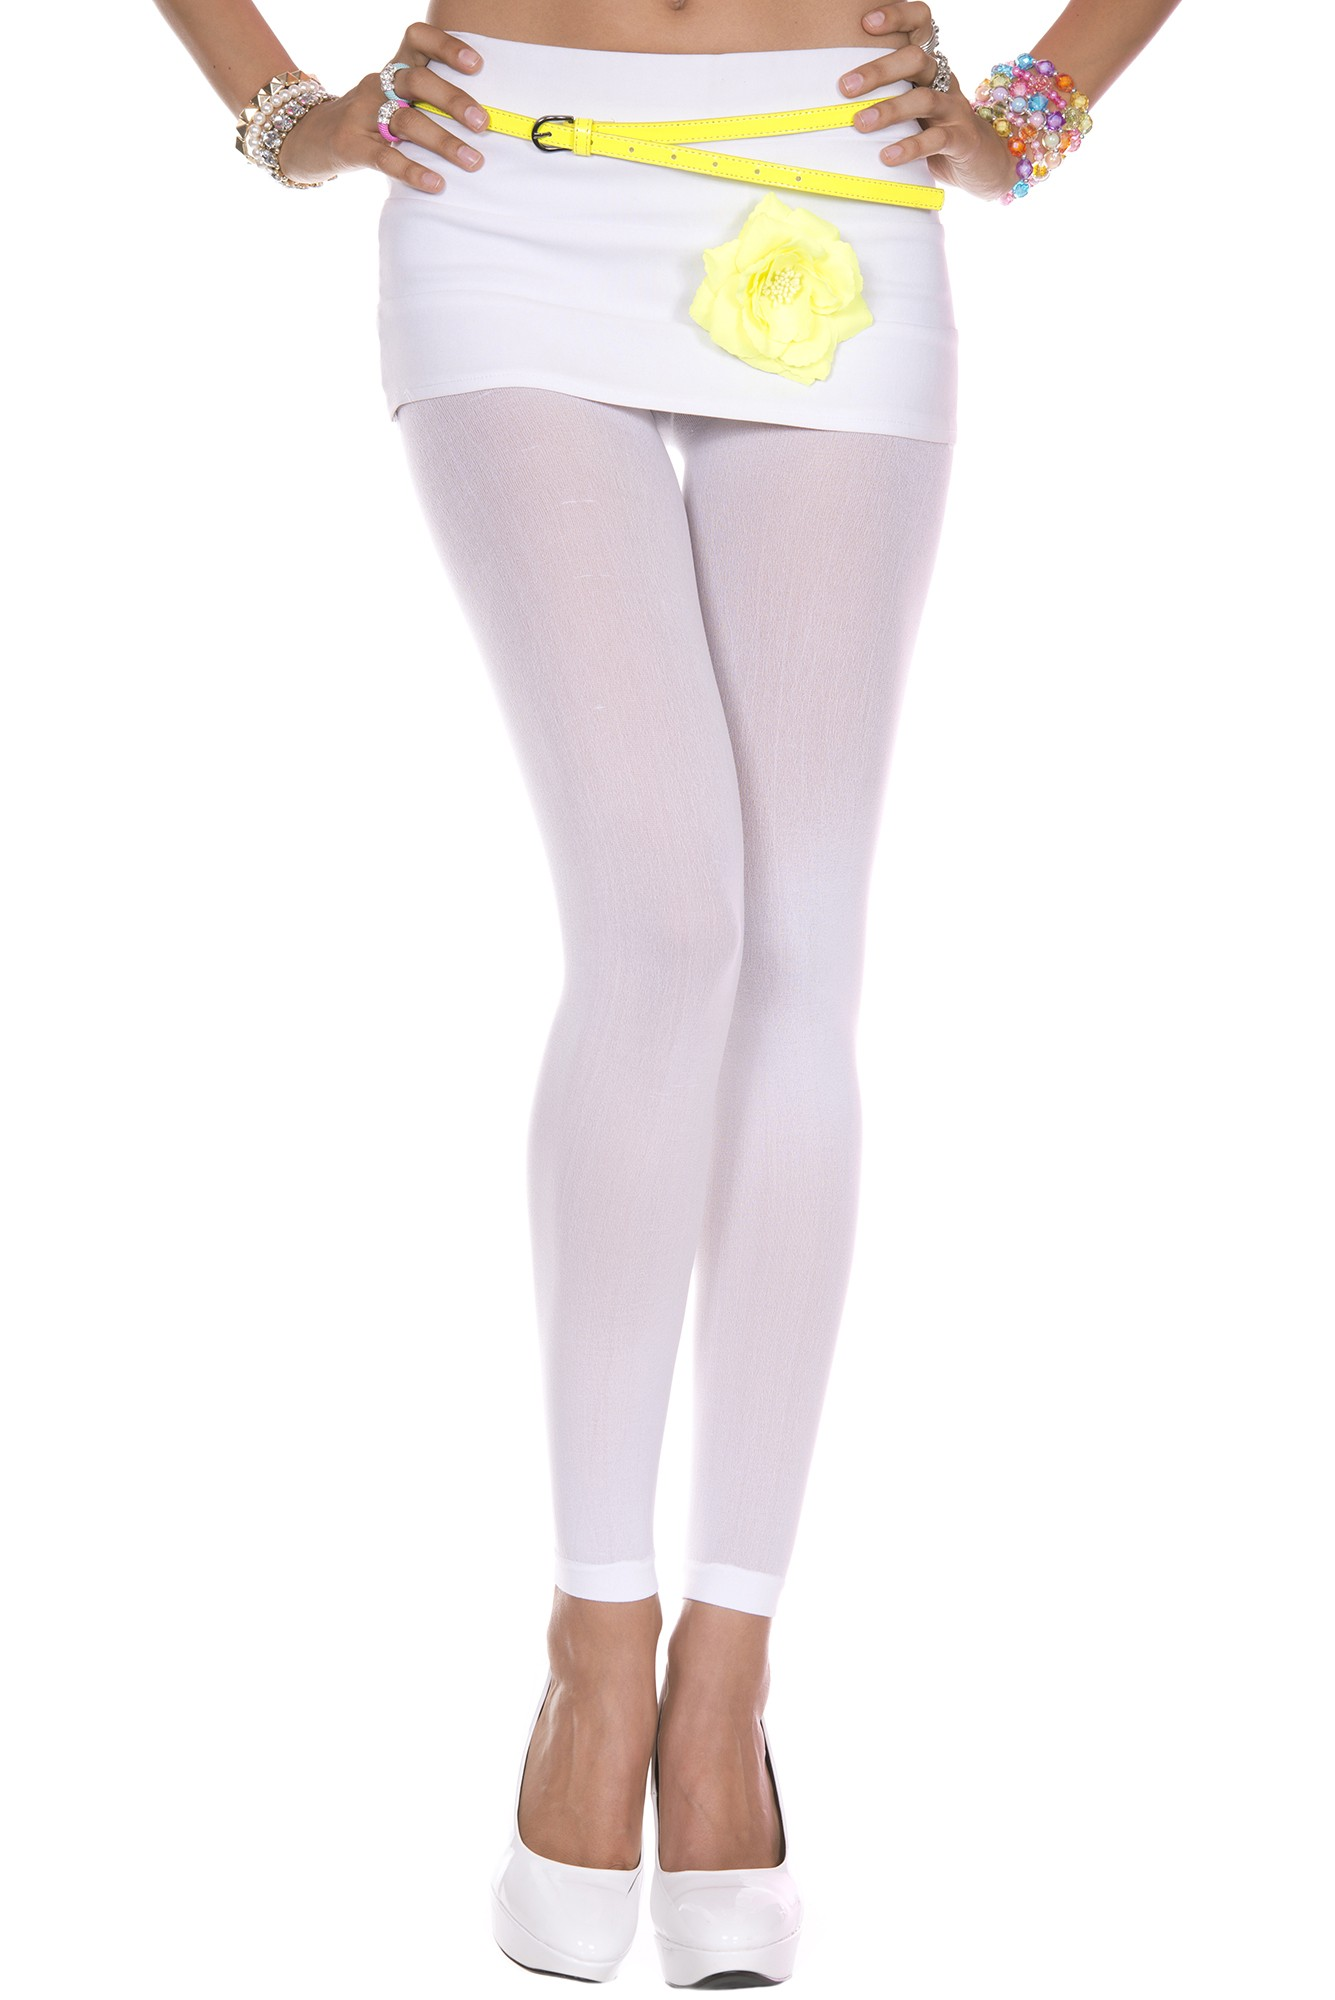 e085194a4a93b4 ... Adult Opaque Footless Tights White. Click here to view Large Image